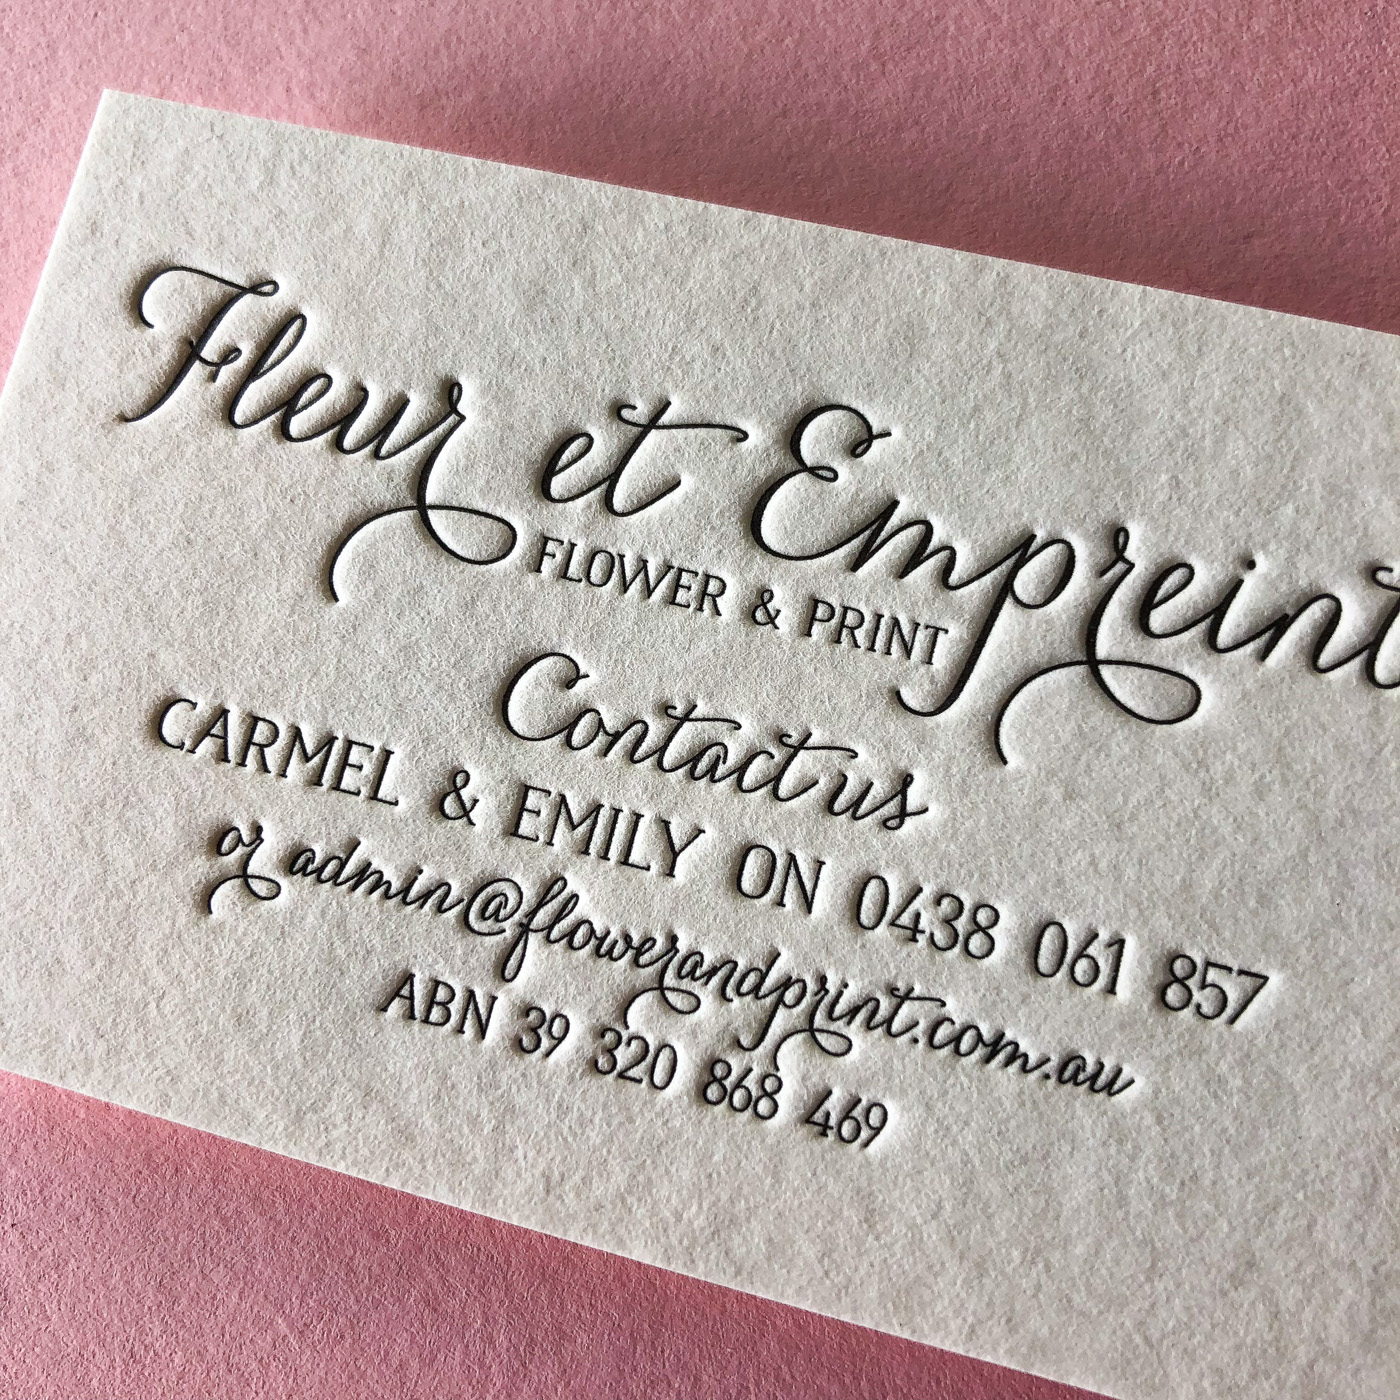 Premium business cards for Fleur et Empreinte on Wild